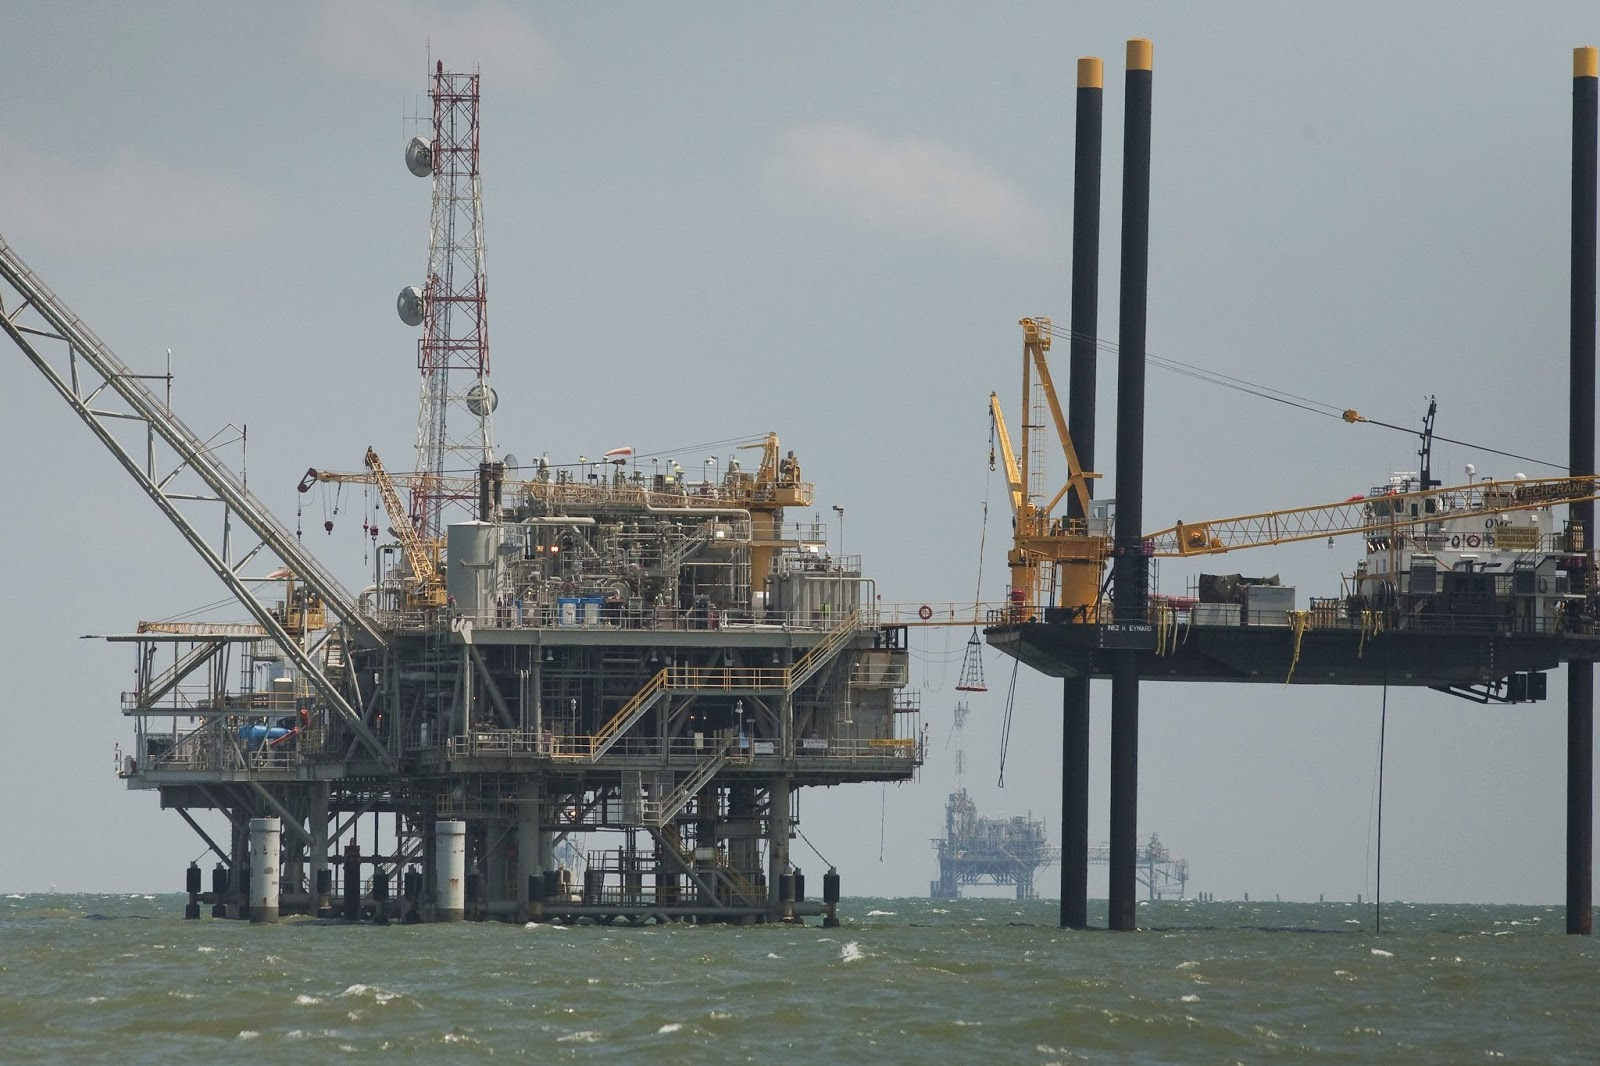 An Exxon rig in Mobile Bay, Ala. The company agreed to publish plans to cope with the risks to its assets posed by potential limits on greenhouse gas emissions. (Credit: Bevil Knapp/European Pressphoto Agency) Click to enlarge.